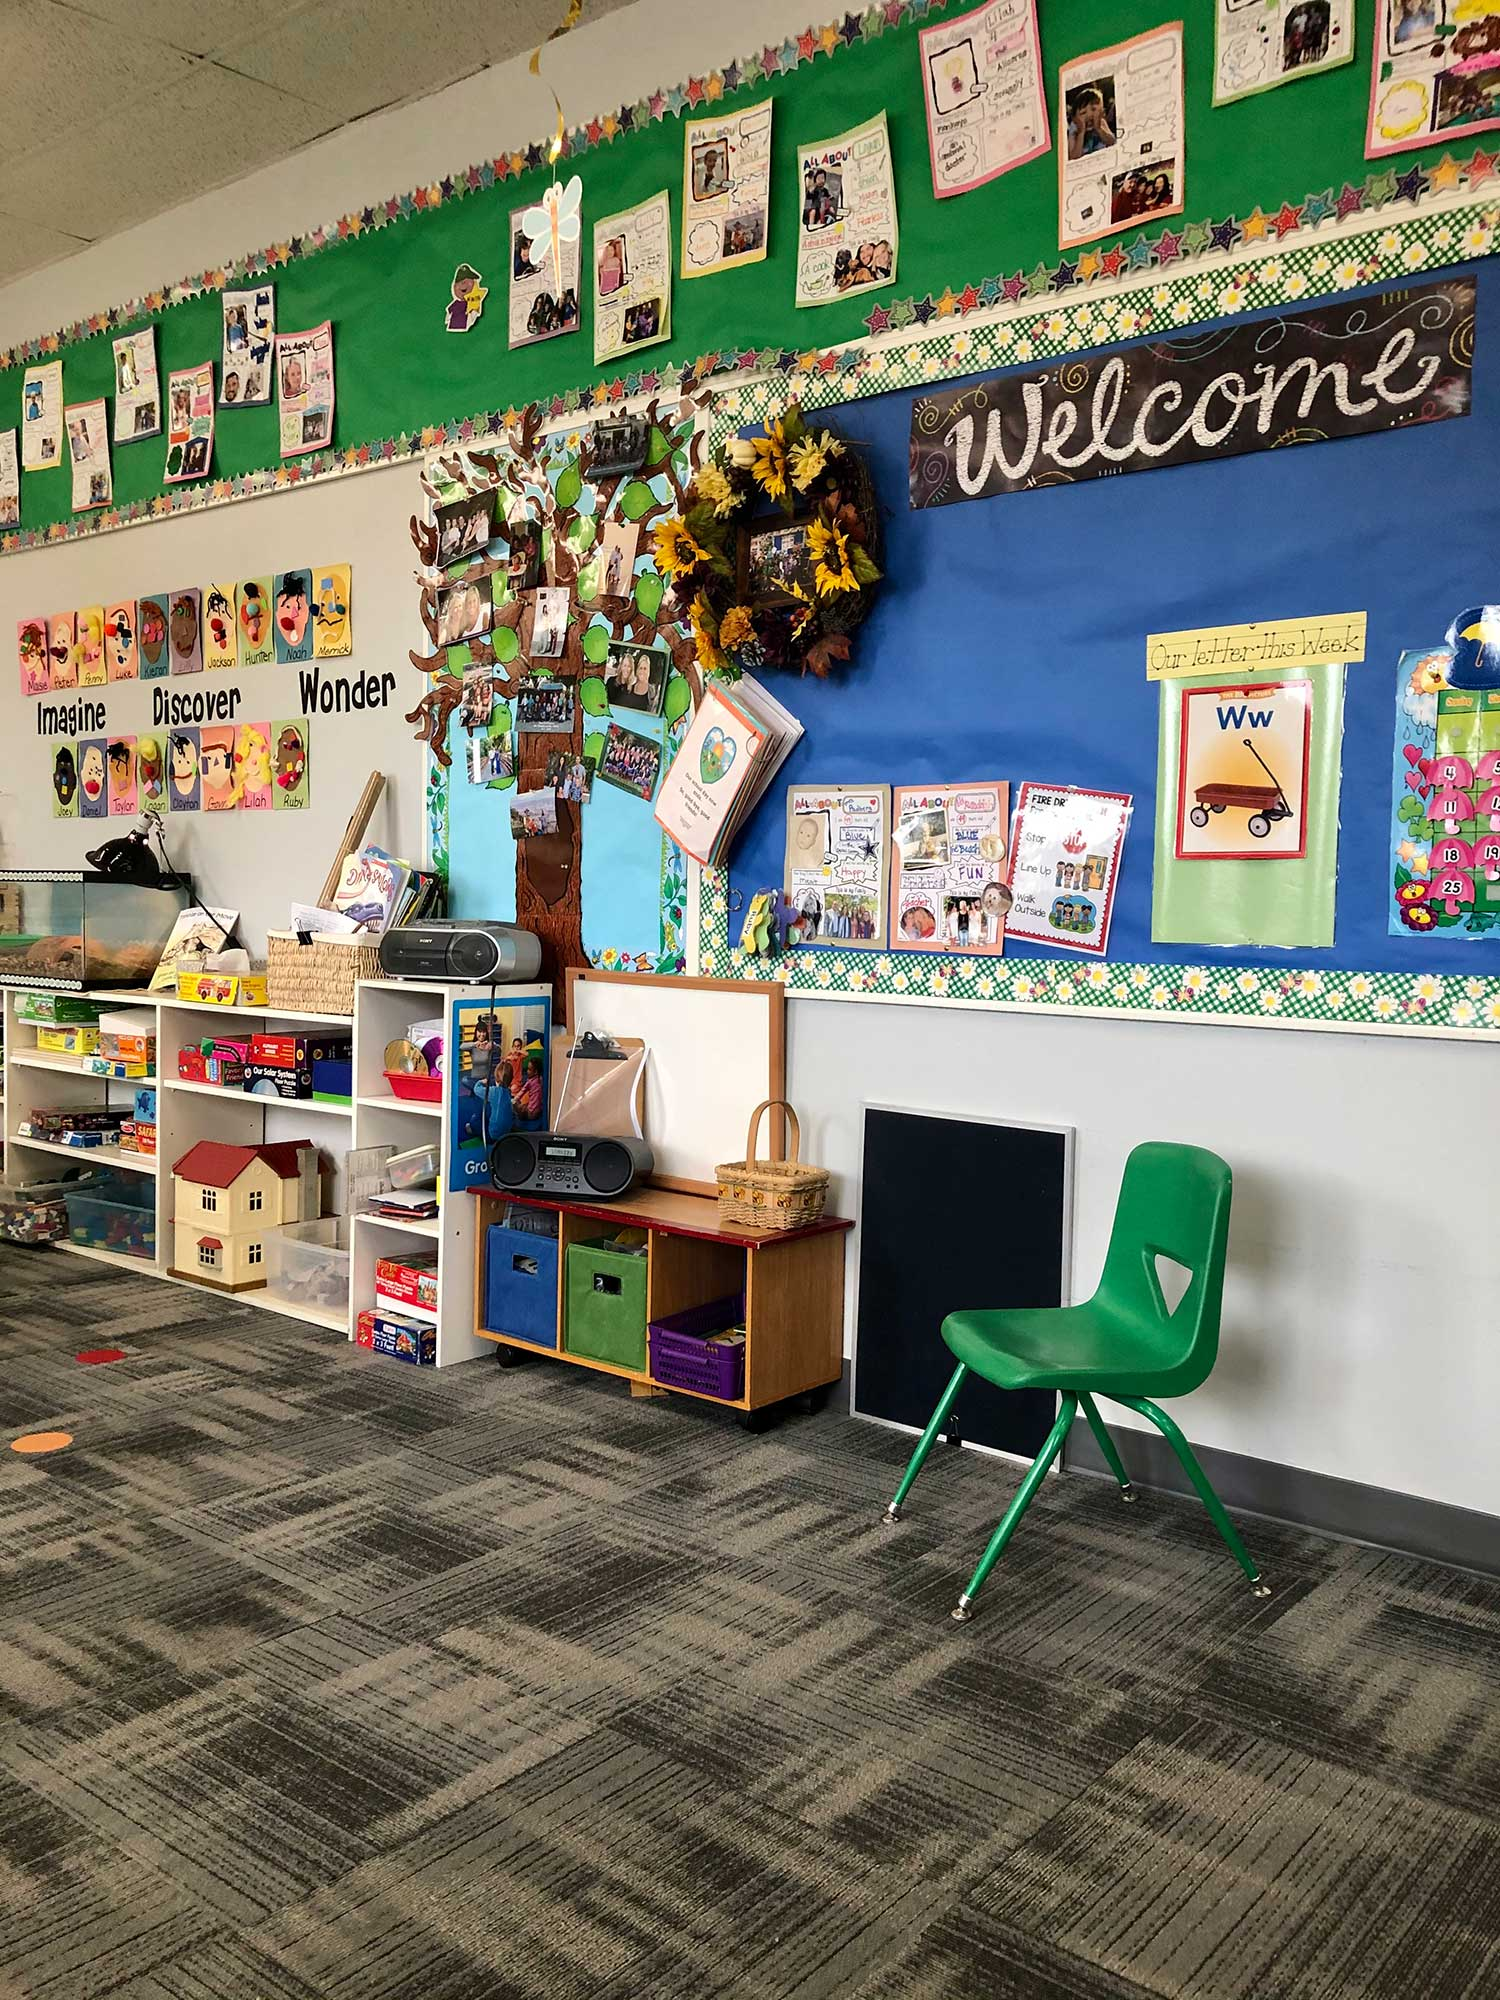 Classroom Wall Lined with Toys and Activities